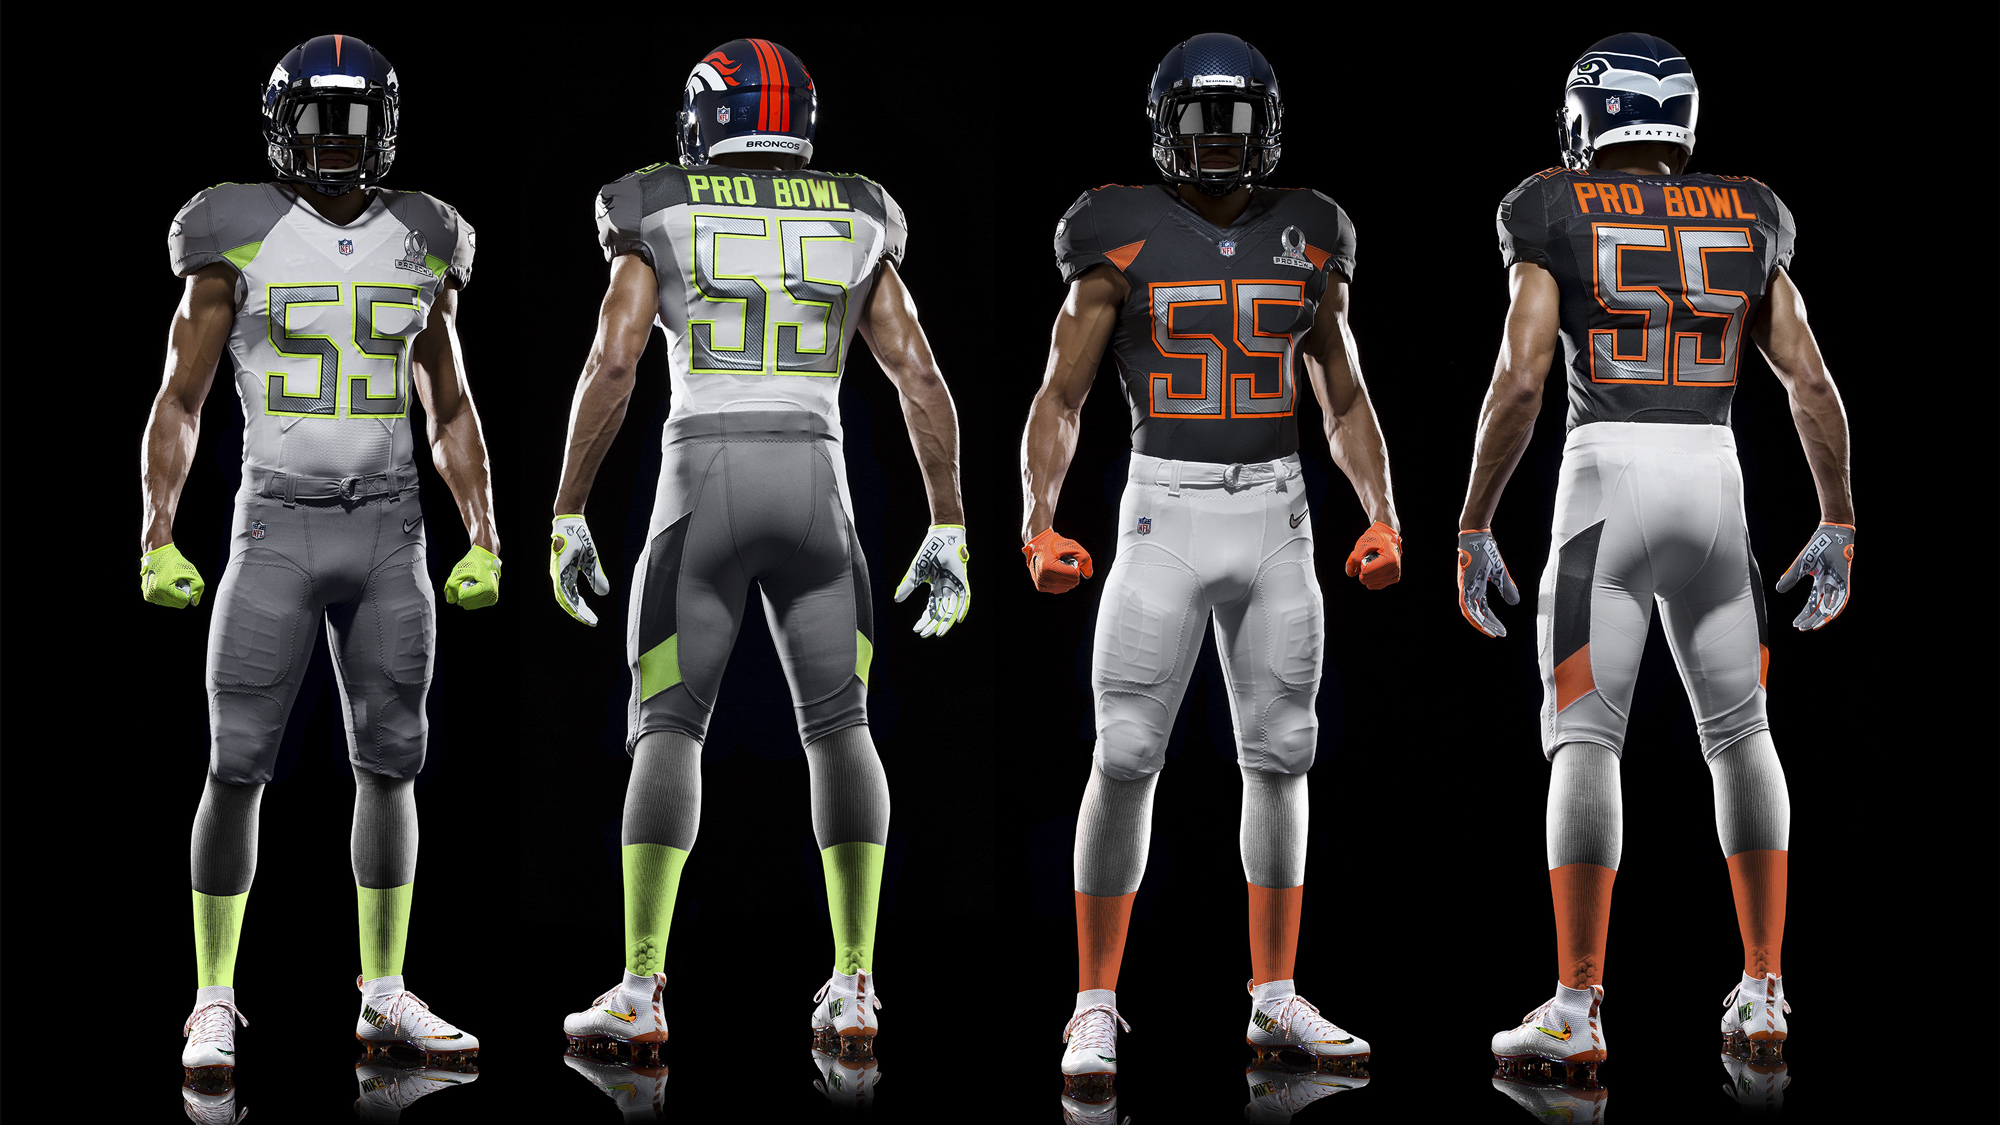 Rule changes for the 2015 Pro Bowl – Football Zebras